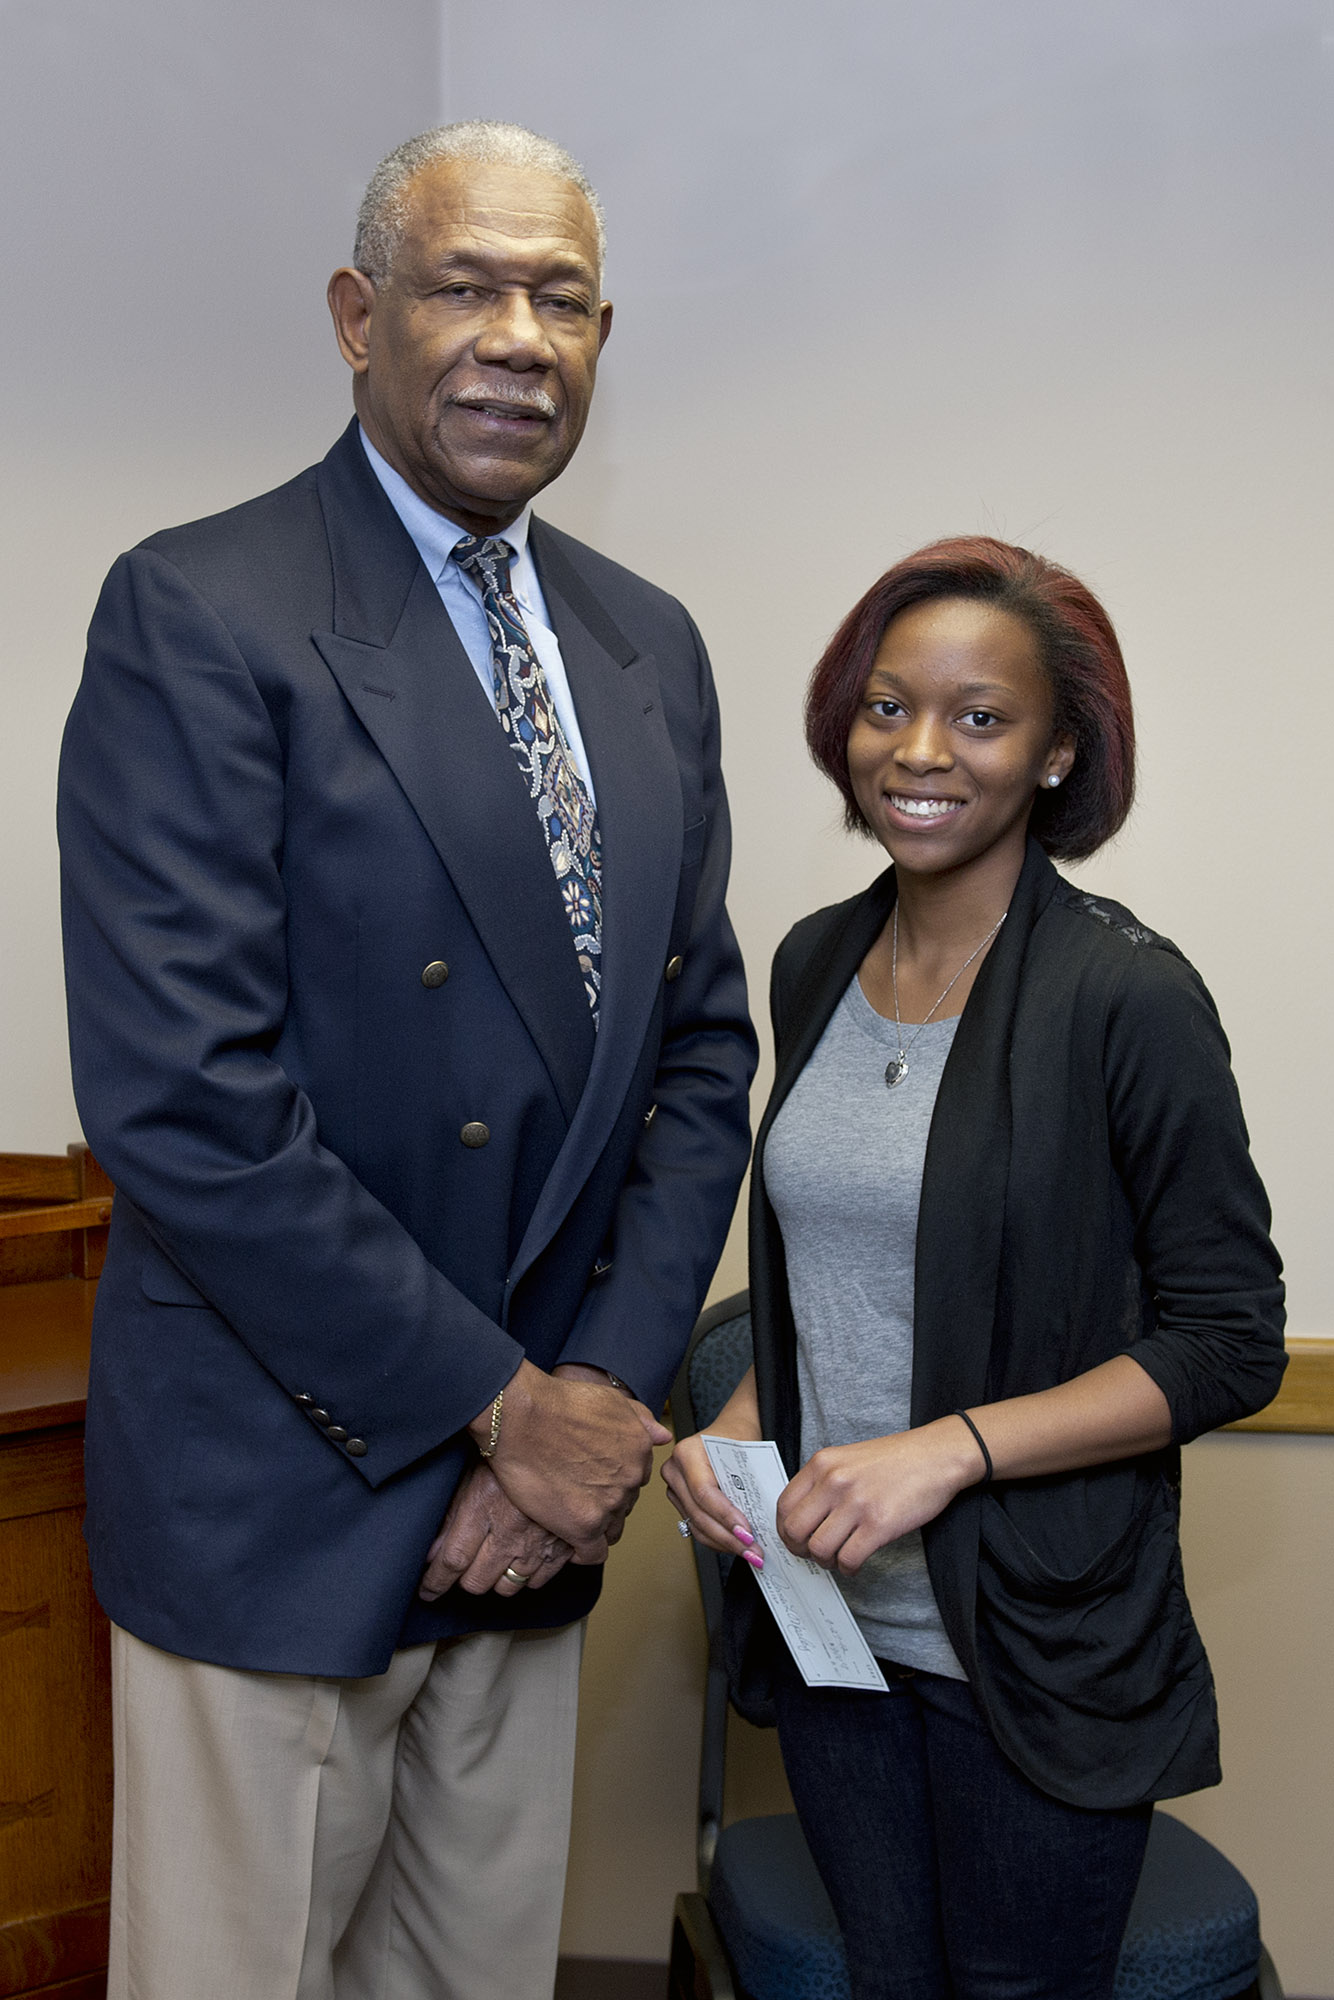 University of Central Oklahoma sophomore Brittany Williams received a $900 scholarship from the Wyatt F. and Mattie M. Jeltz Scholarship Foundation.  Dr. James Mosley, the Jeltz Foundation chairman, presented the scholarship during a recent visit to the Central campus.